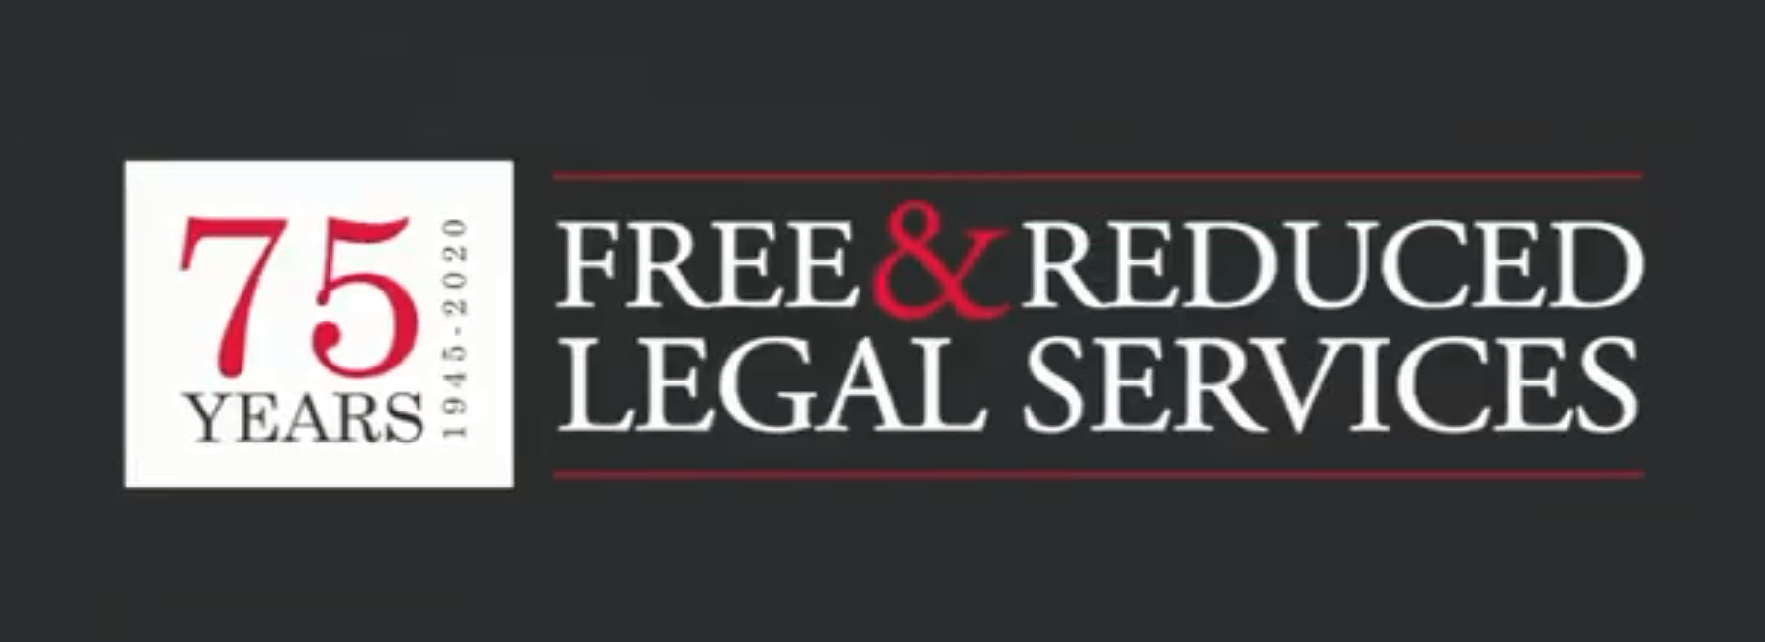 75 Years of Free & Reduced Legal Services